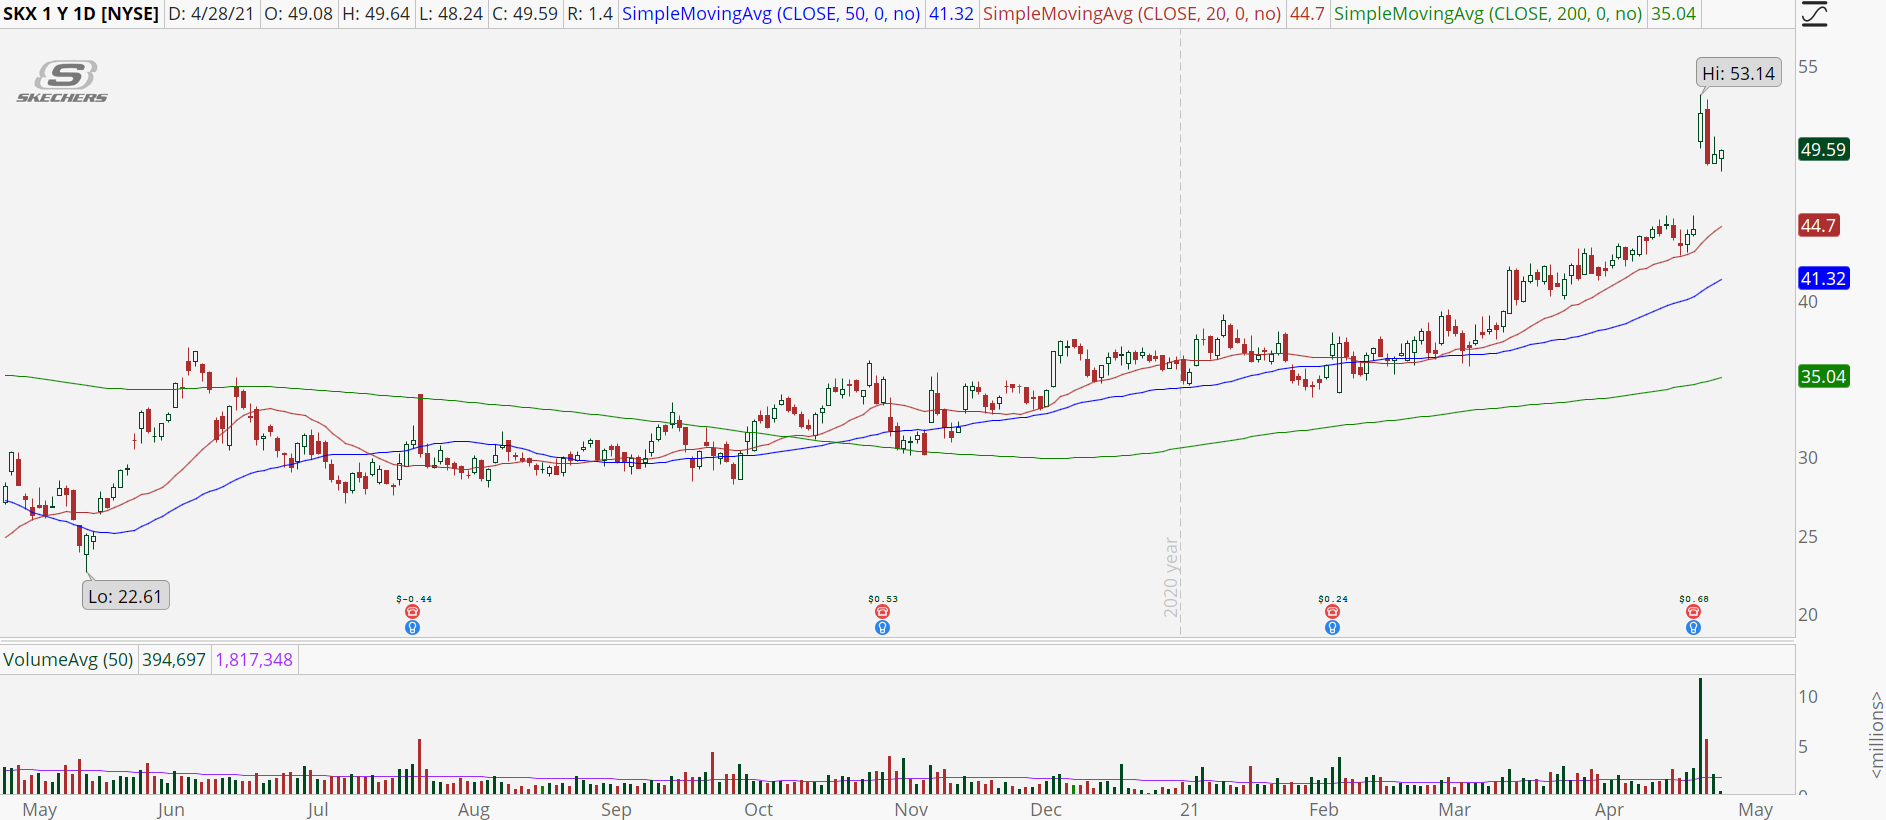 Skechers (SKX) stock with bull retracement pattern